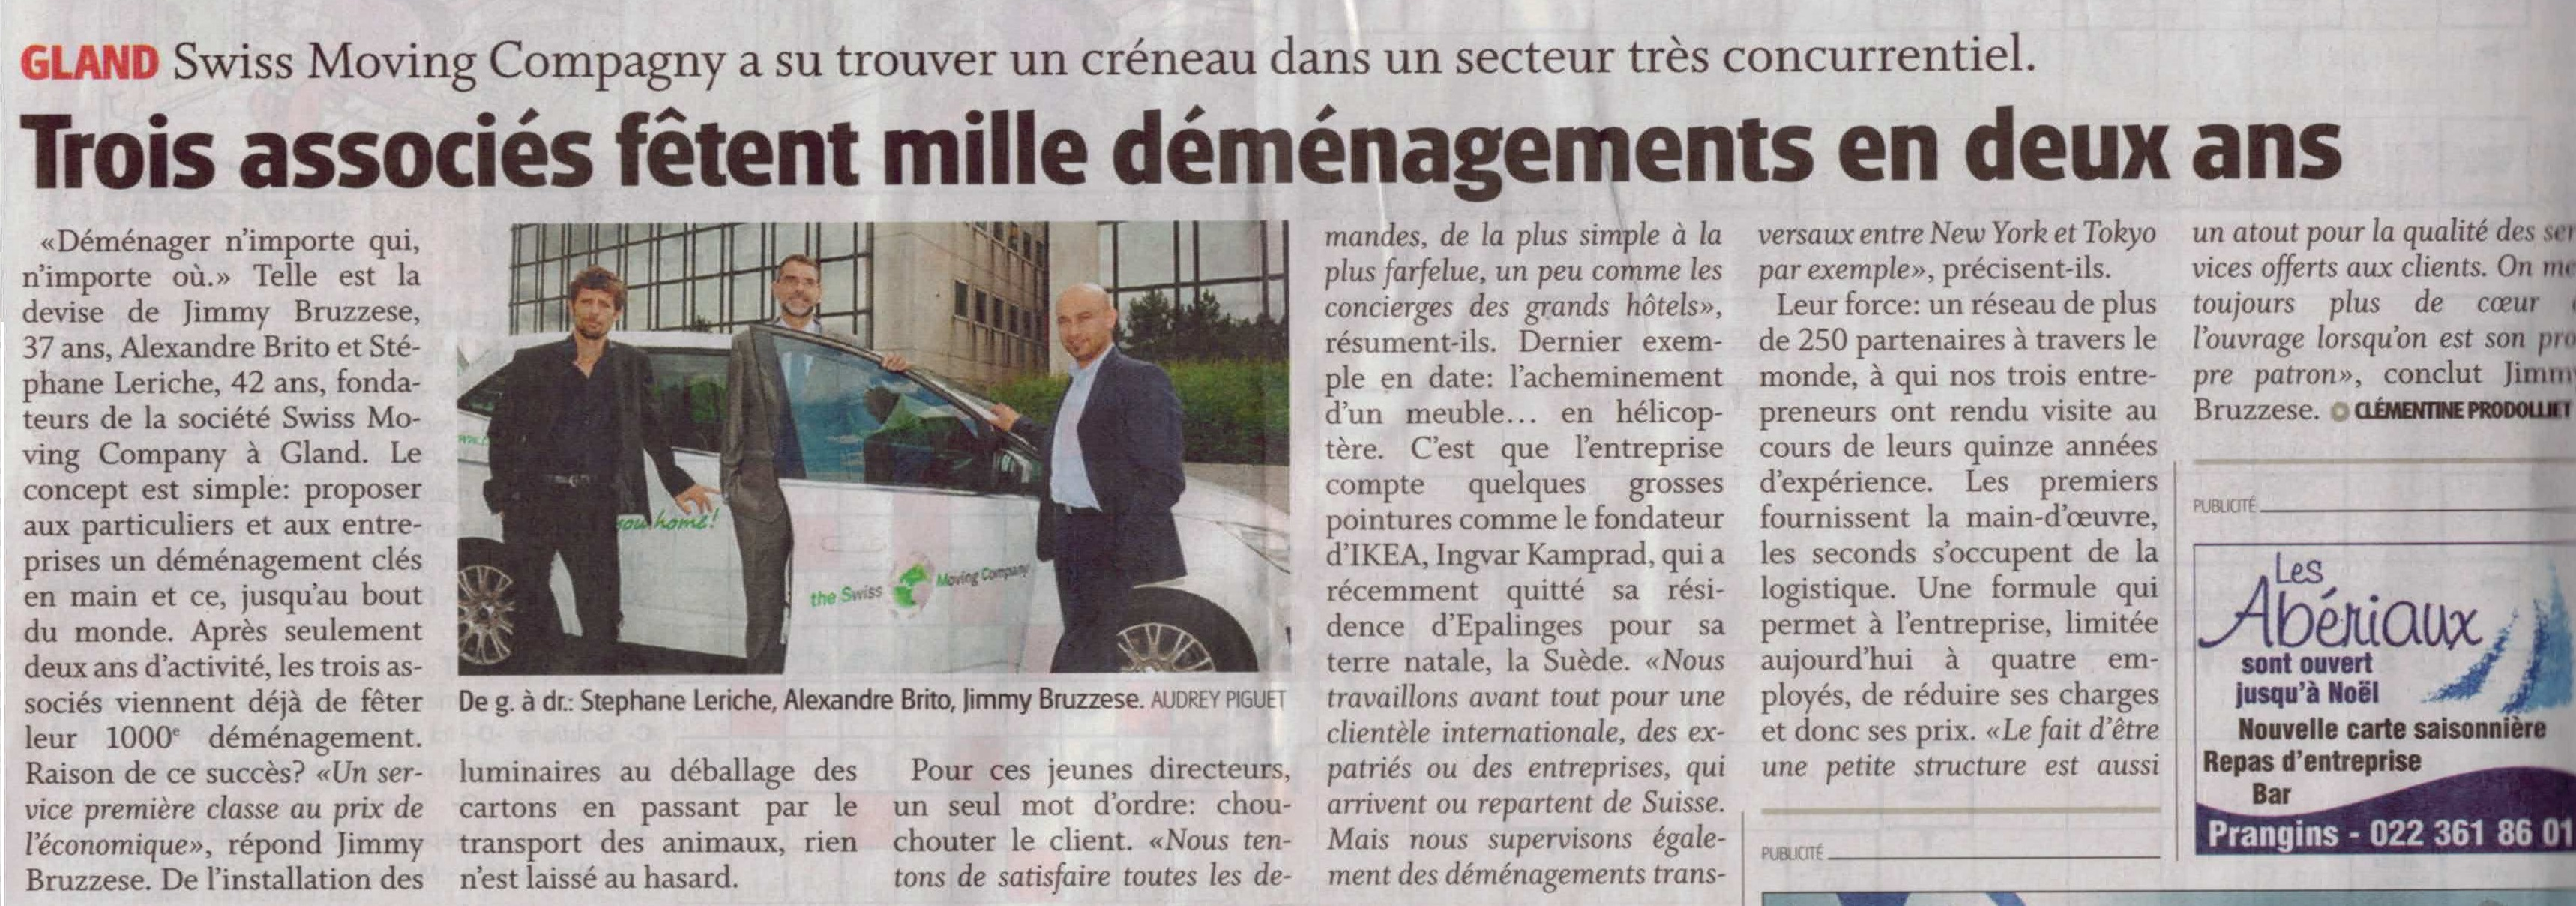 Article La Côte 13.09.2013 - the Swiss Moving Company Celebrates its 1'000th move in only 2 years